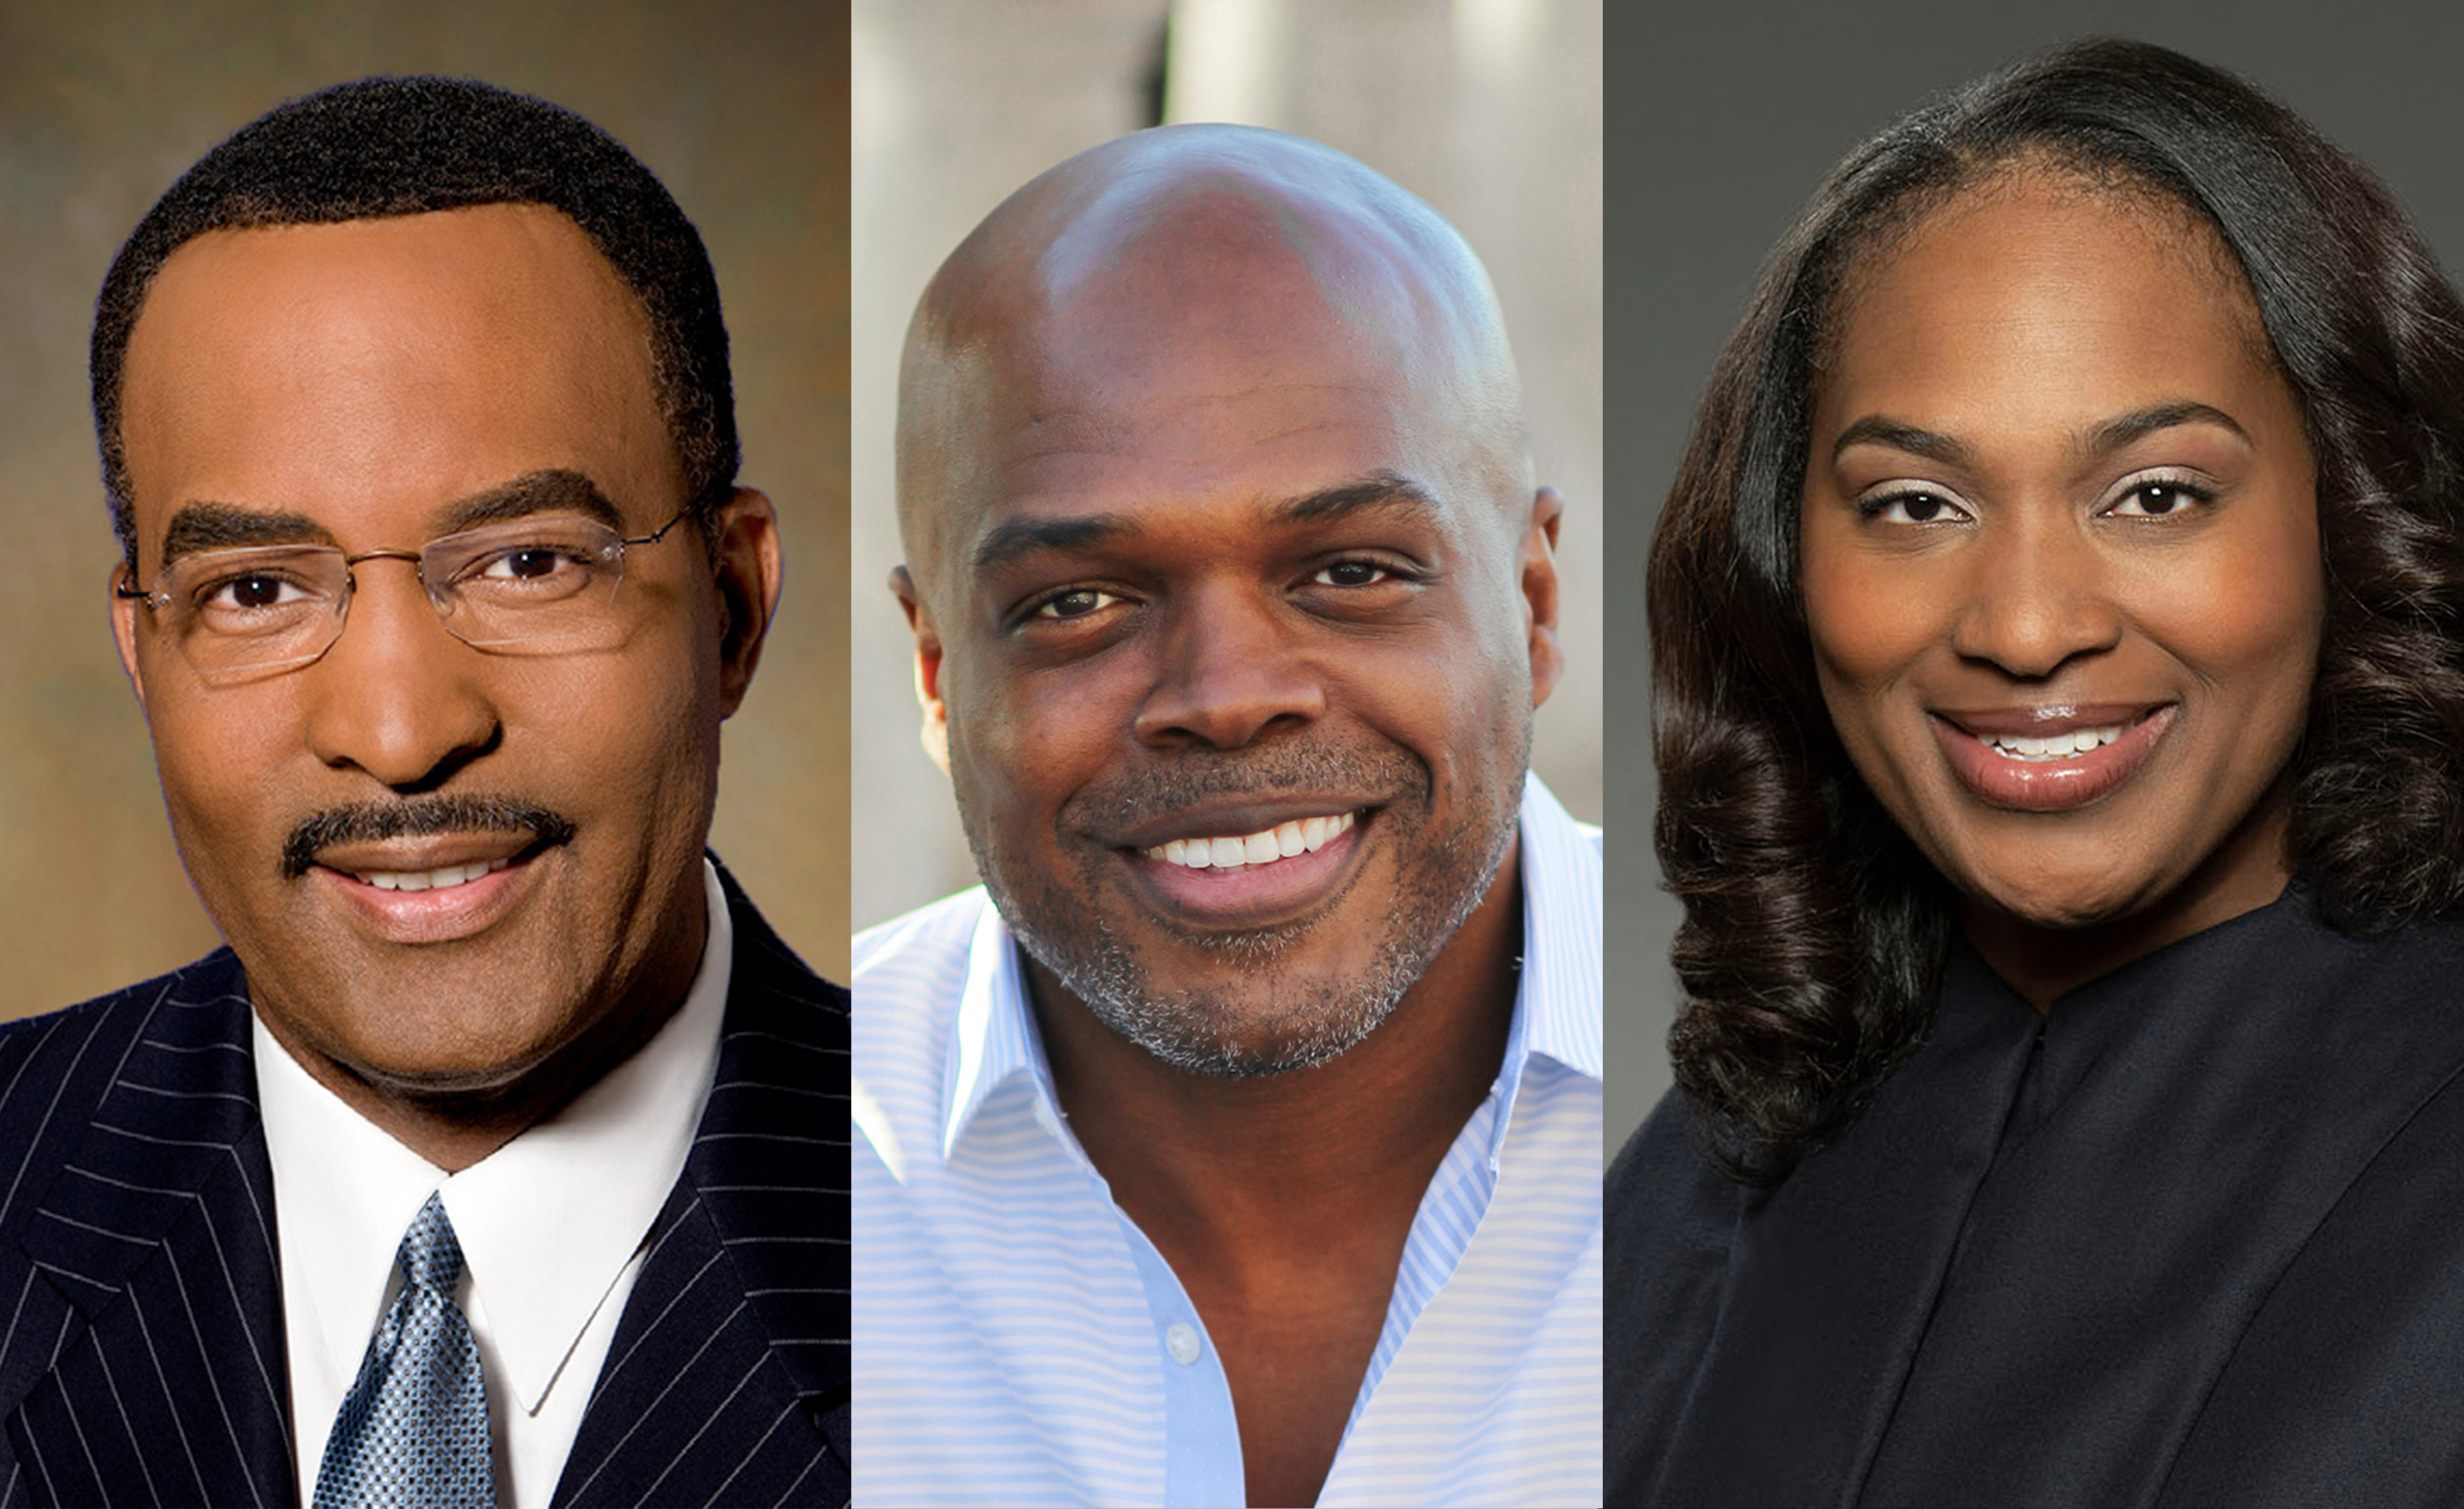 University announces three upcoming Commencement speakers